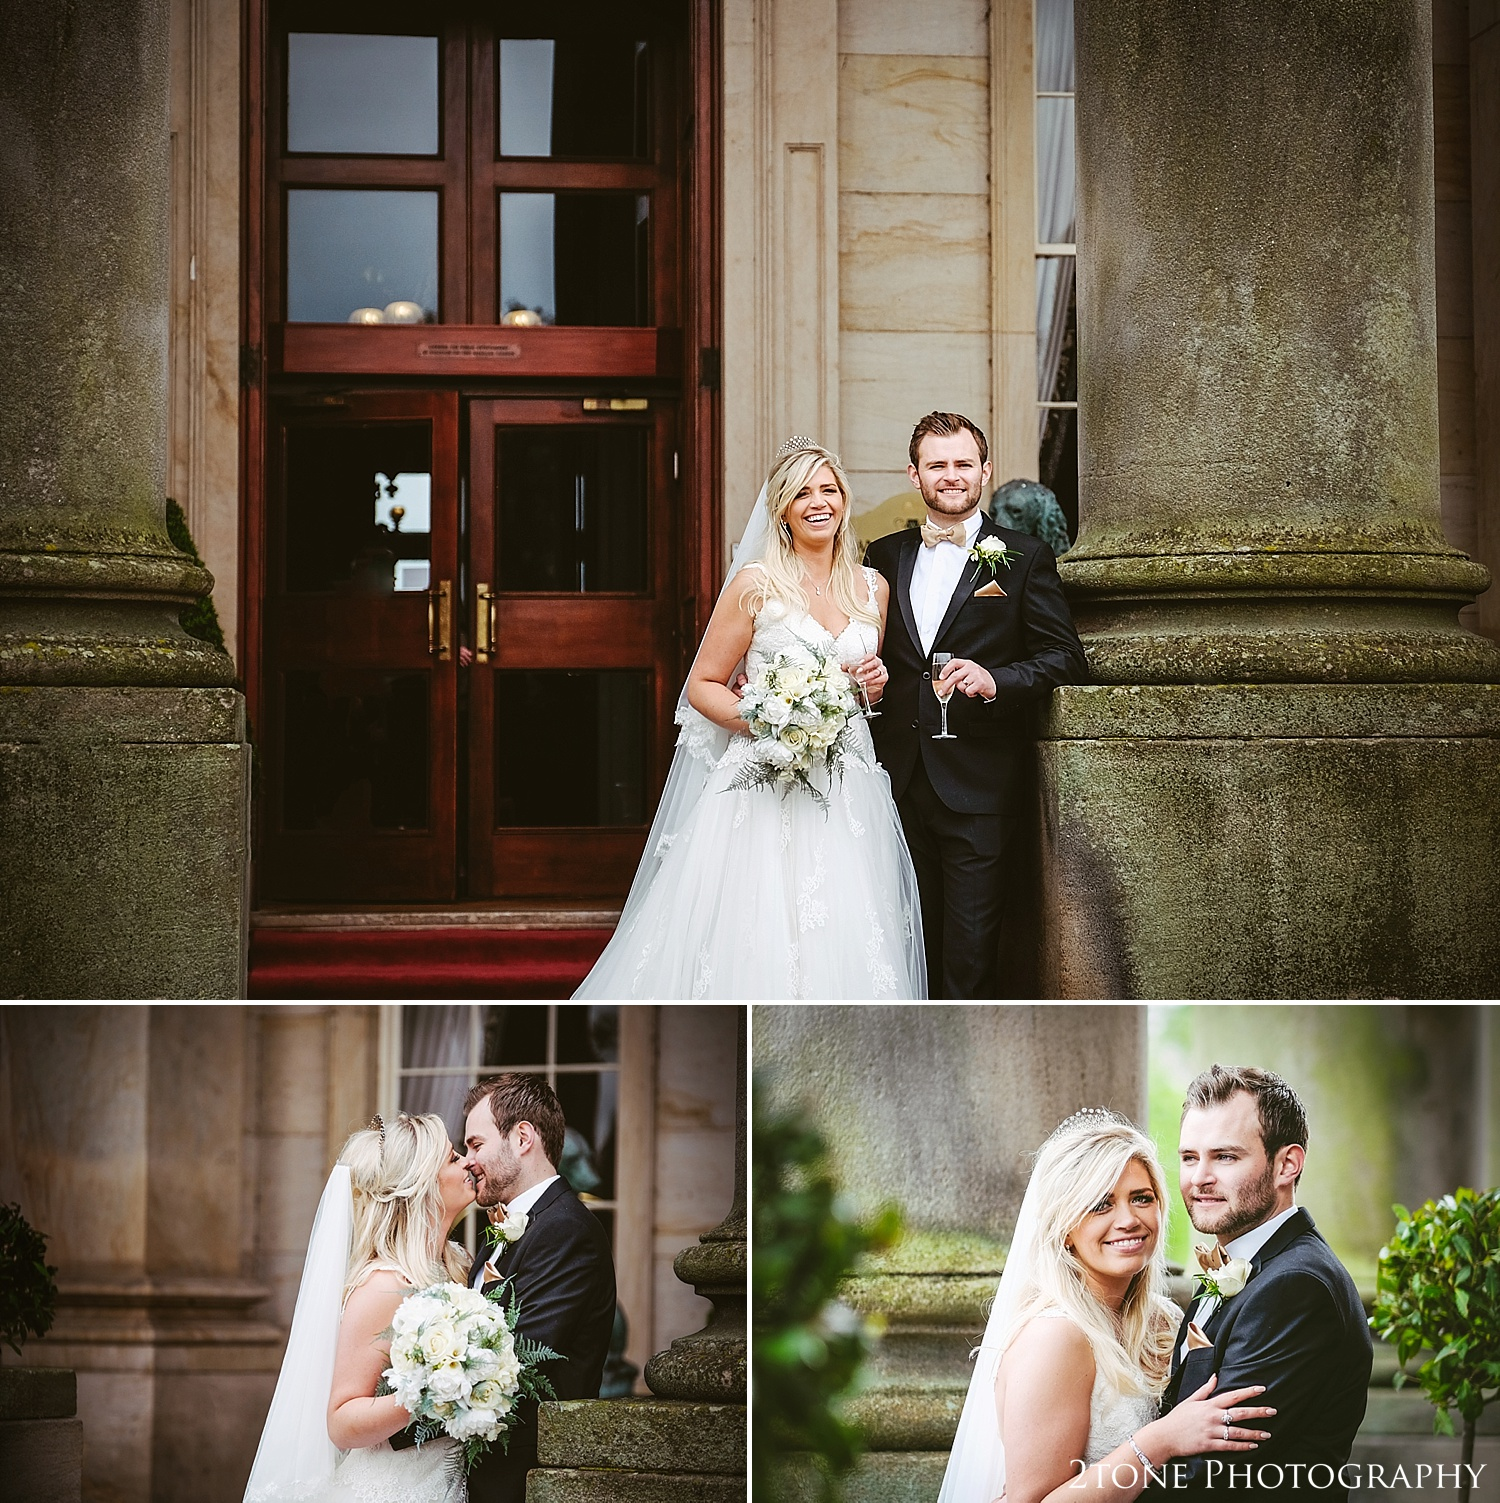 The Bride and Groom at Wynyard Hall.  Wynyard Hall wedding photography by www.2tonephotography.co.uk